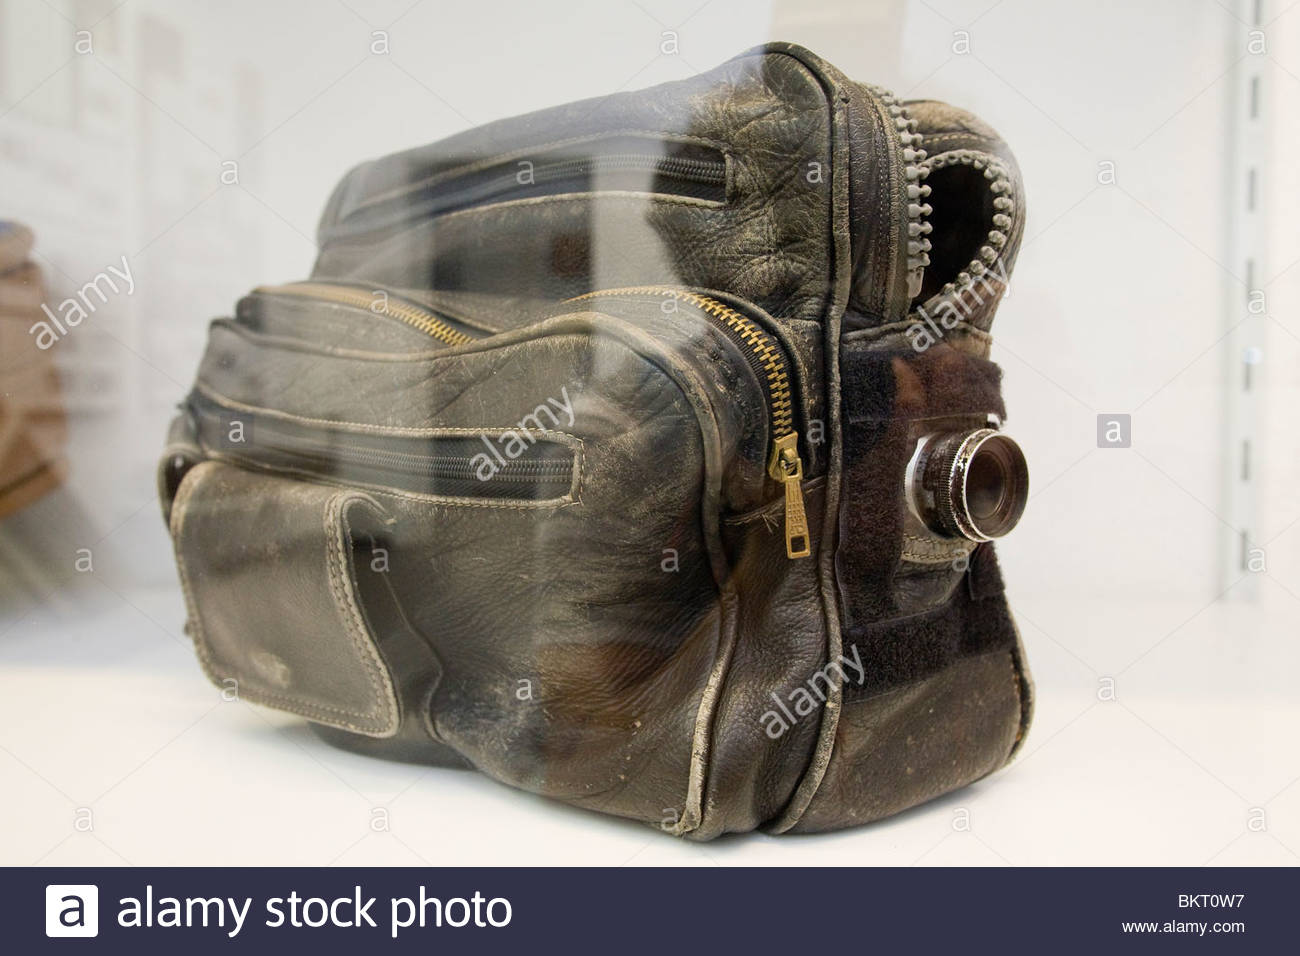 bag with hidden camera used by spies of the GDR,the Stasi secret center in the time of the GDR,the Stasi Museum,Berlin,Germany - Stock Image